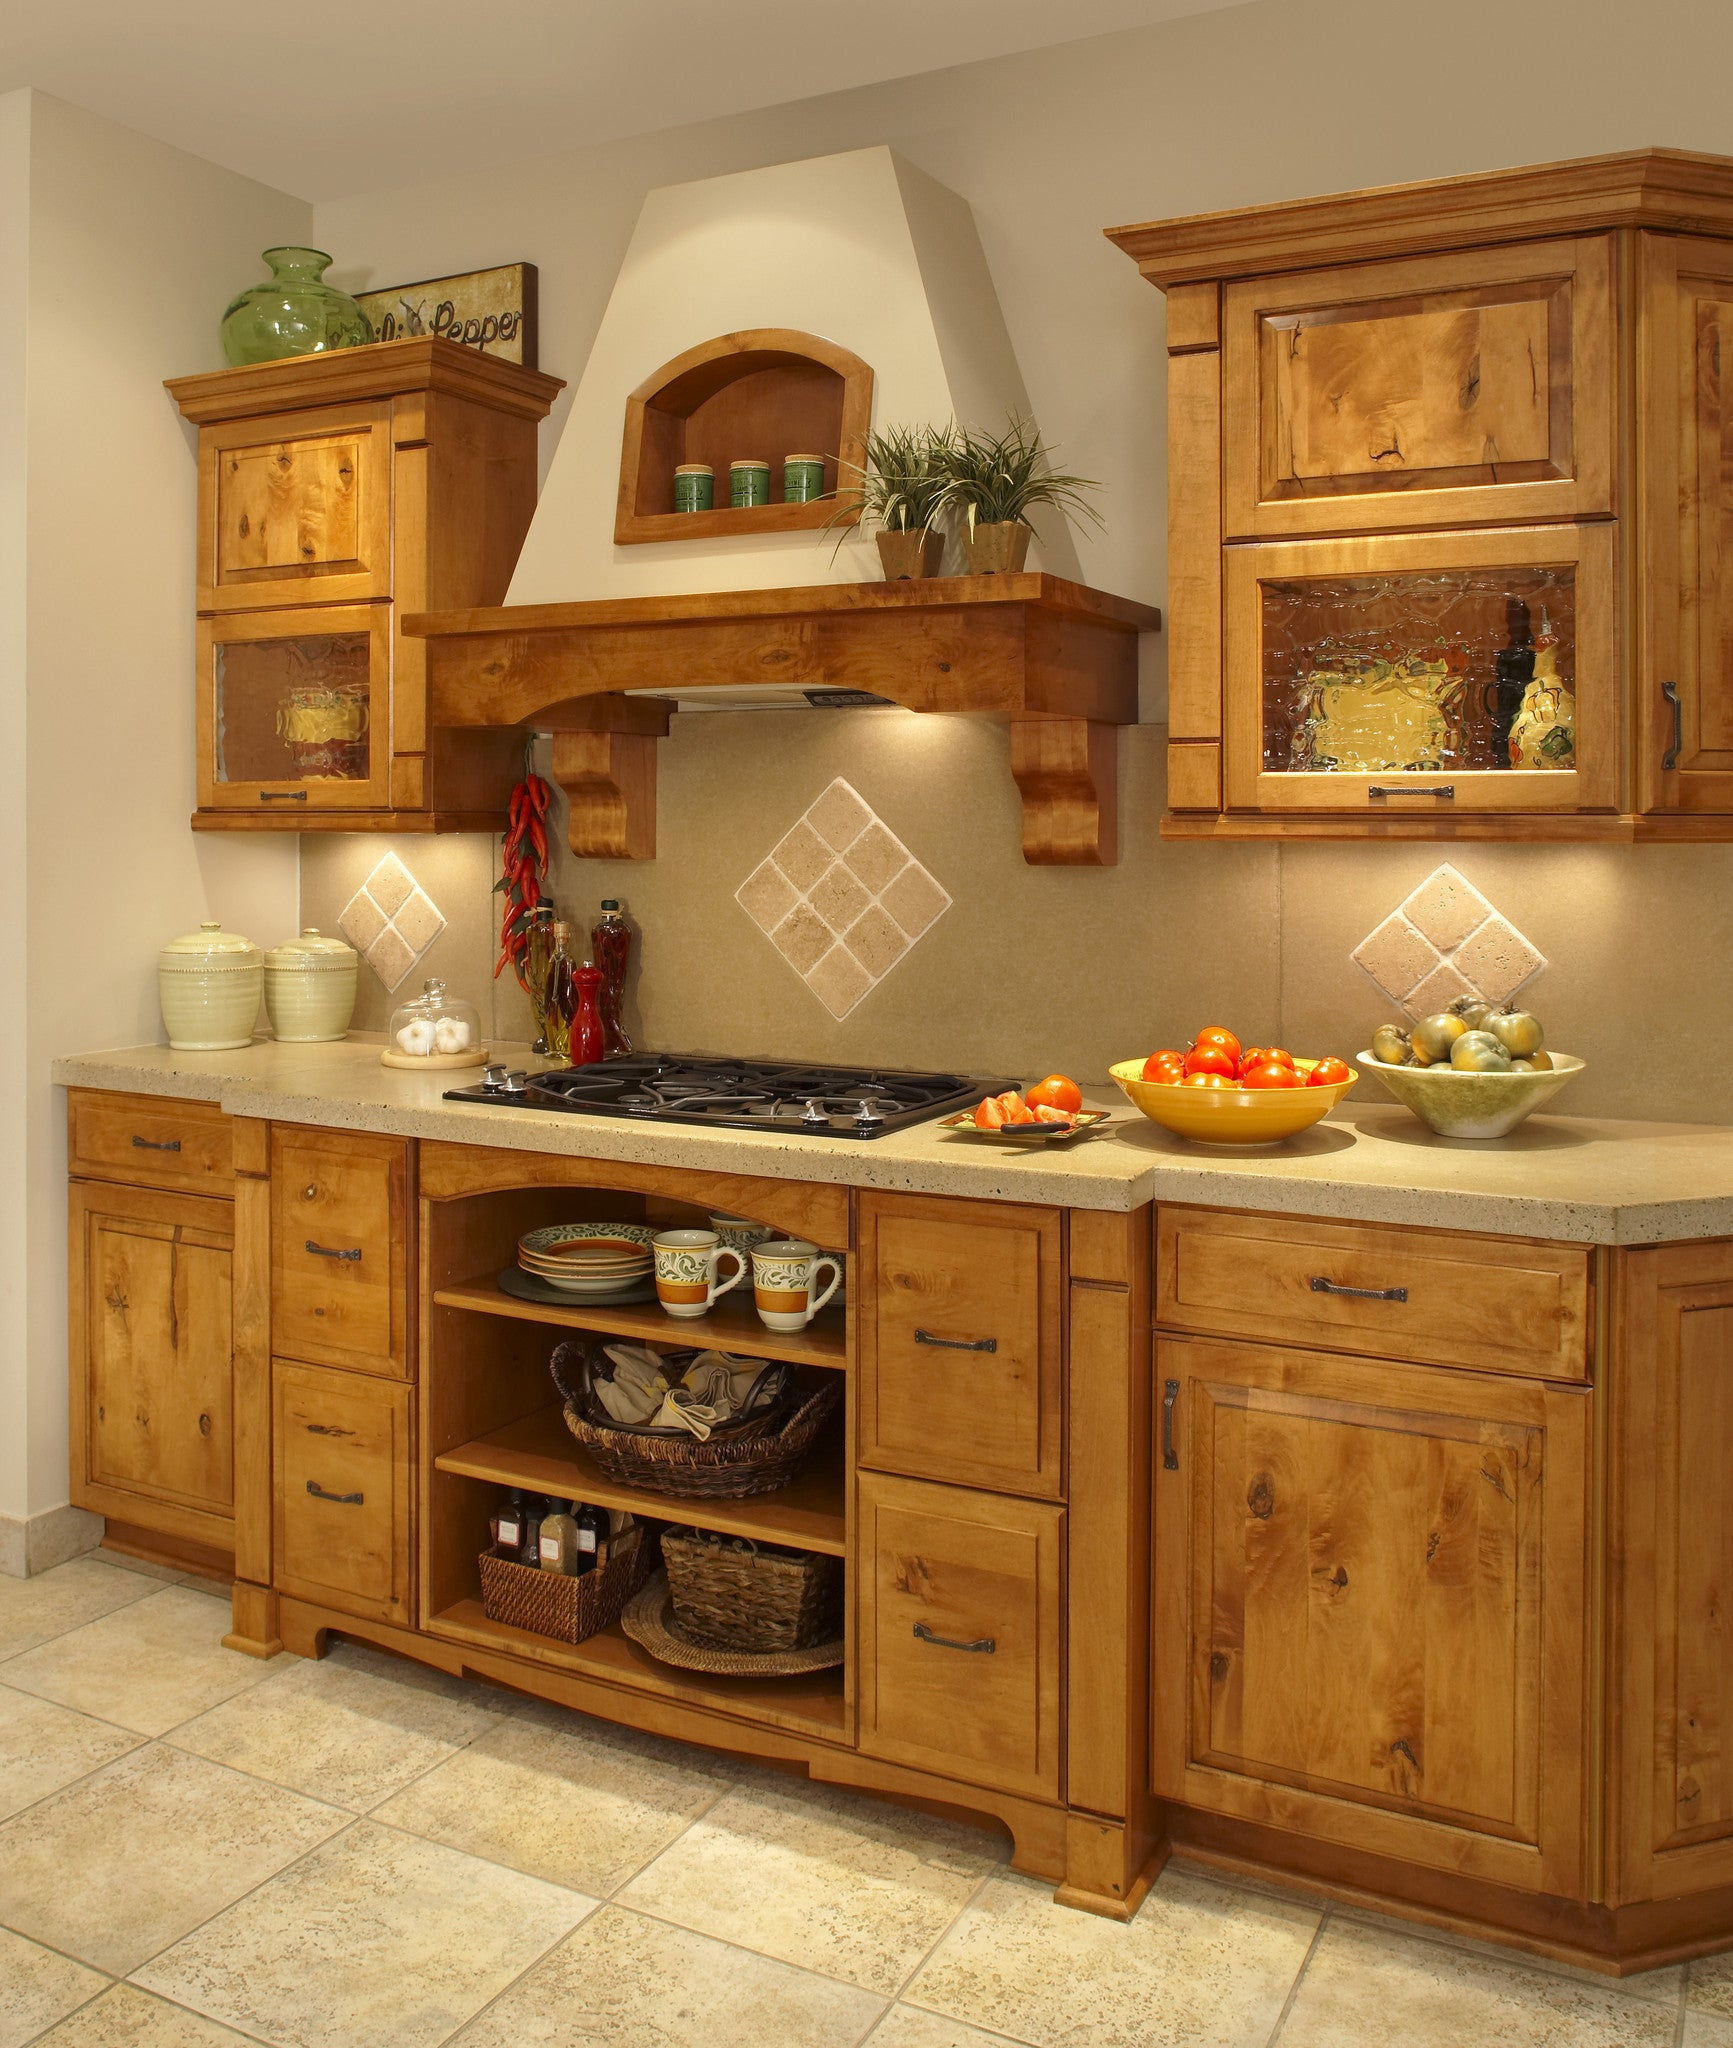 Jamestown Designer Kitchens Jamestown Kitchen Lafata Cabinets